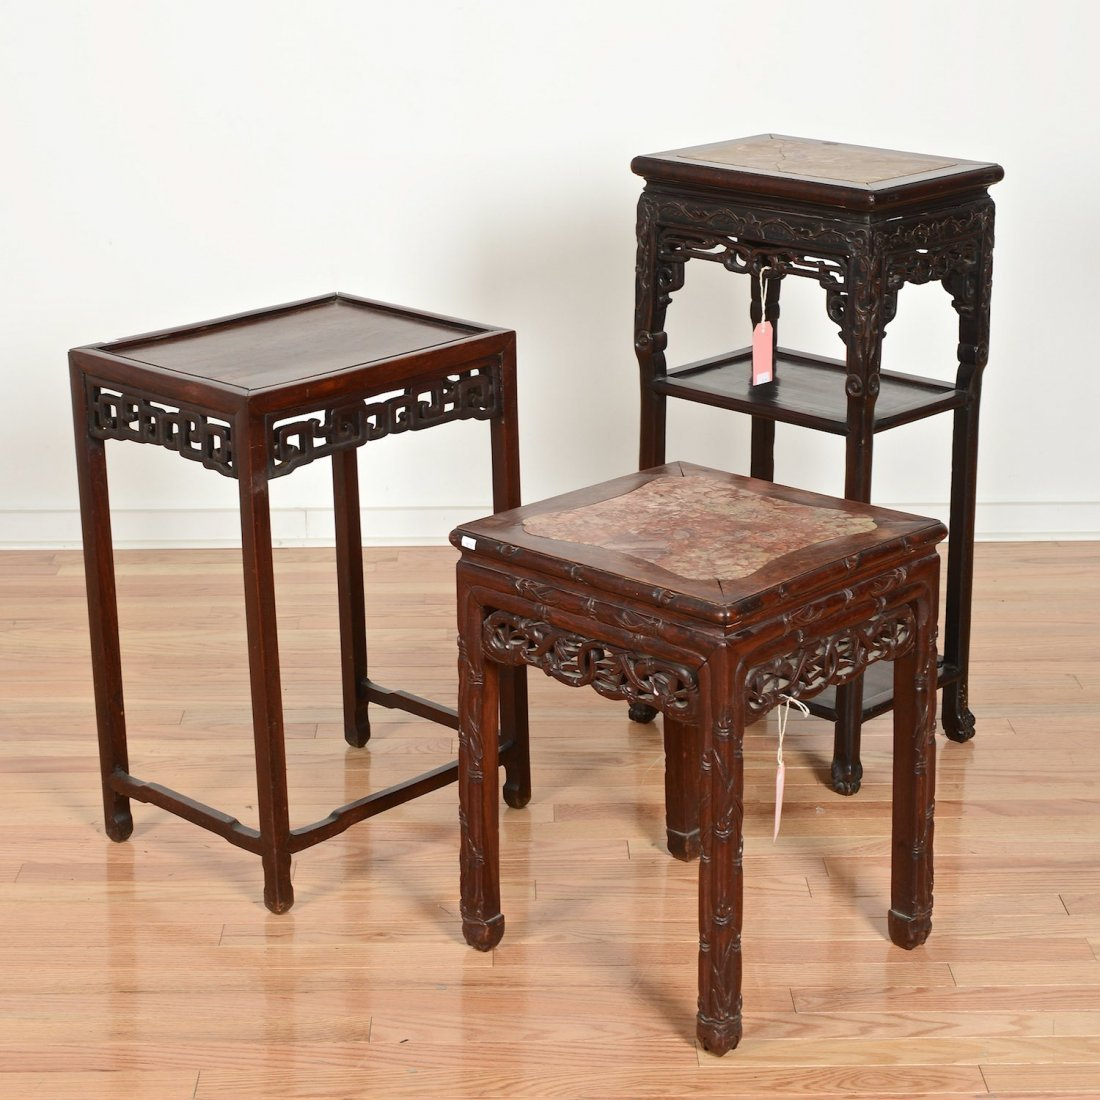 (3) Chinese Export carved hardwood tables